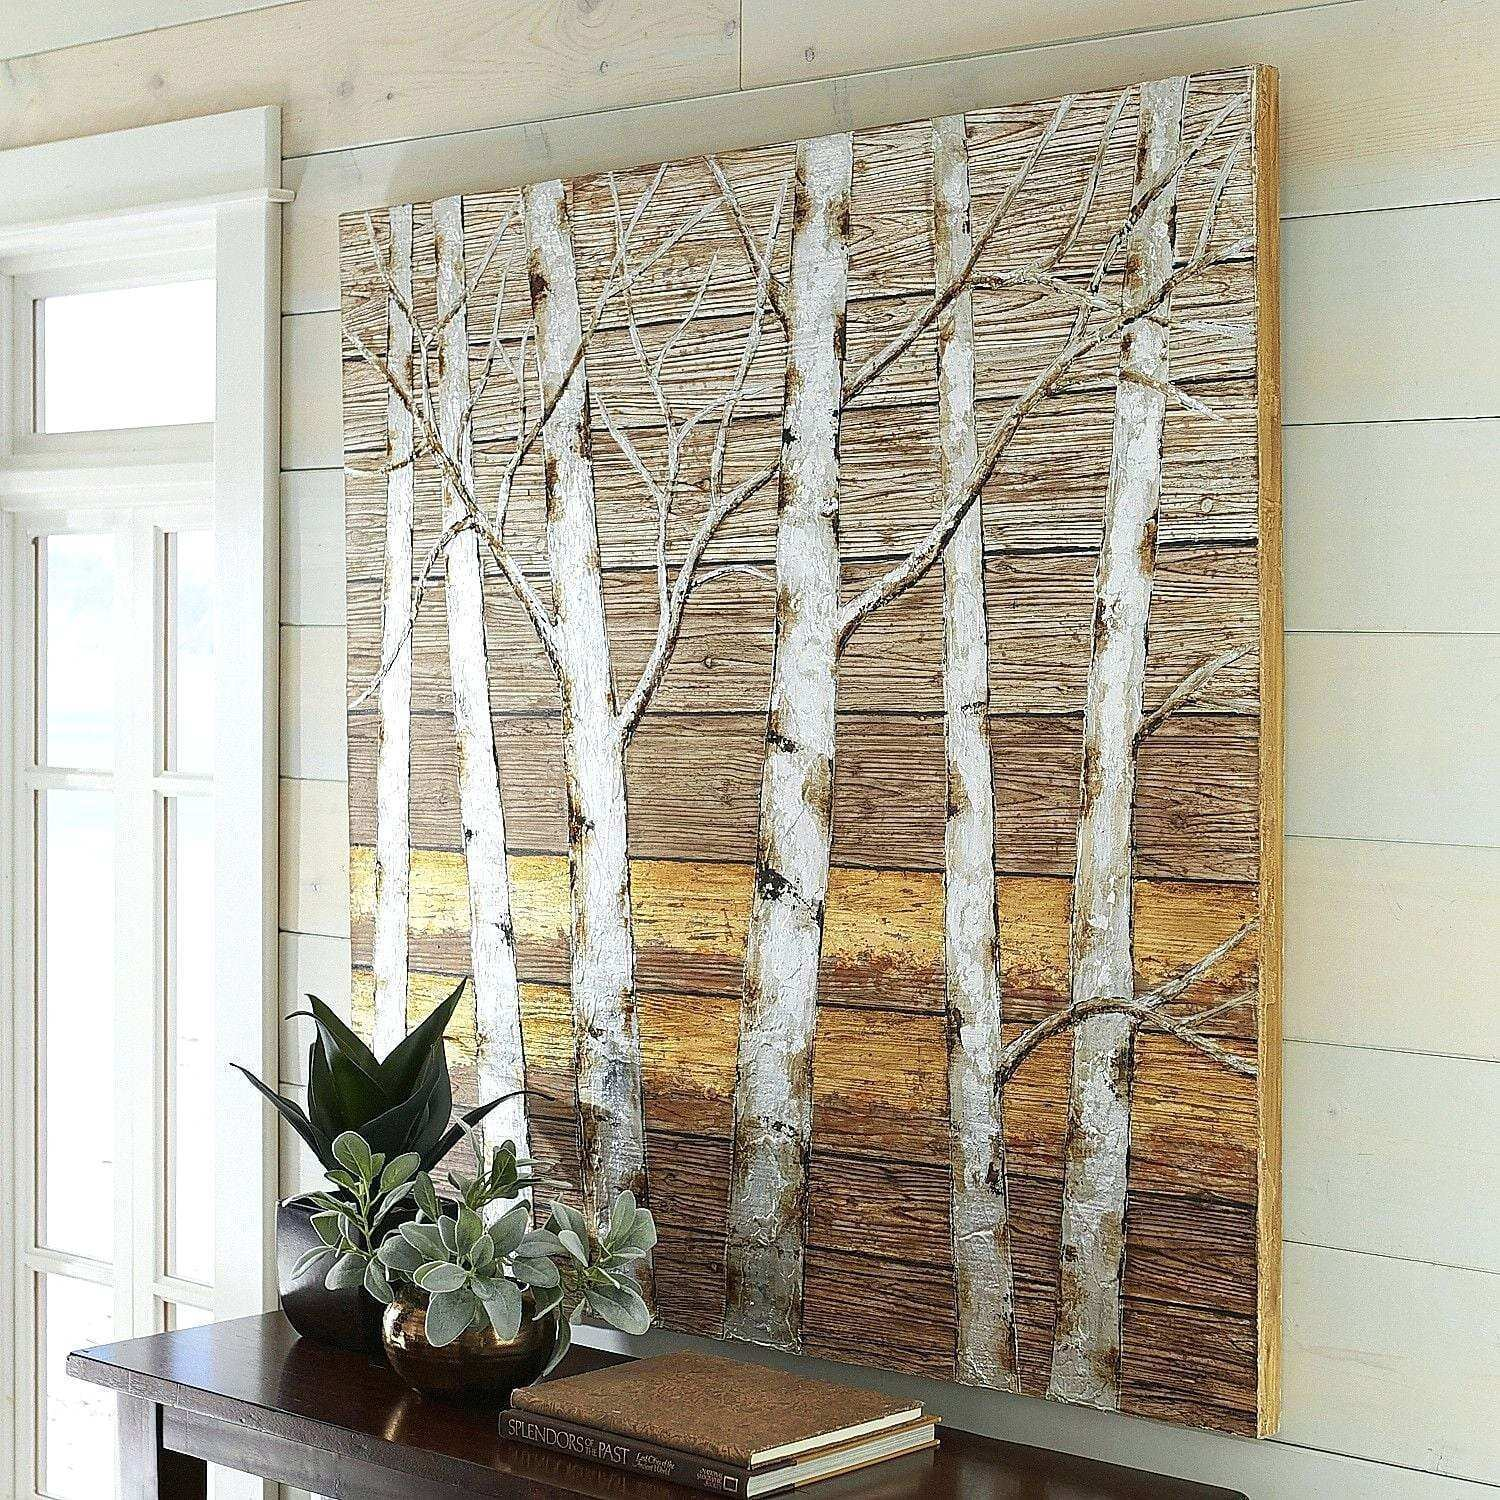 Wall Art With Trees Wall Art Tree Decals Tree Decal For Wall Tree